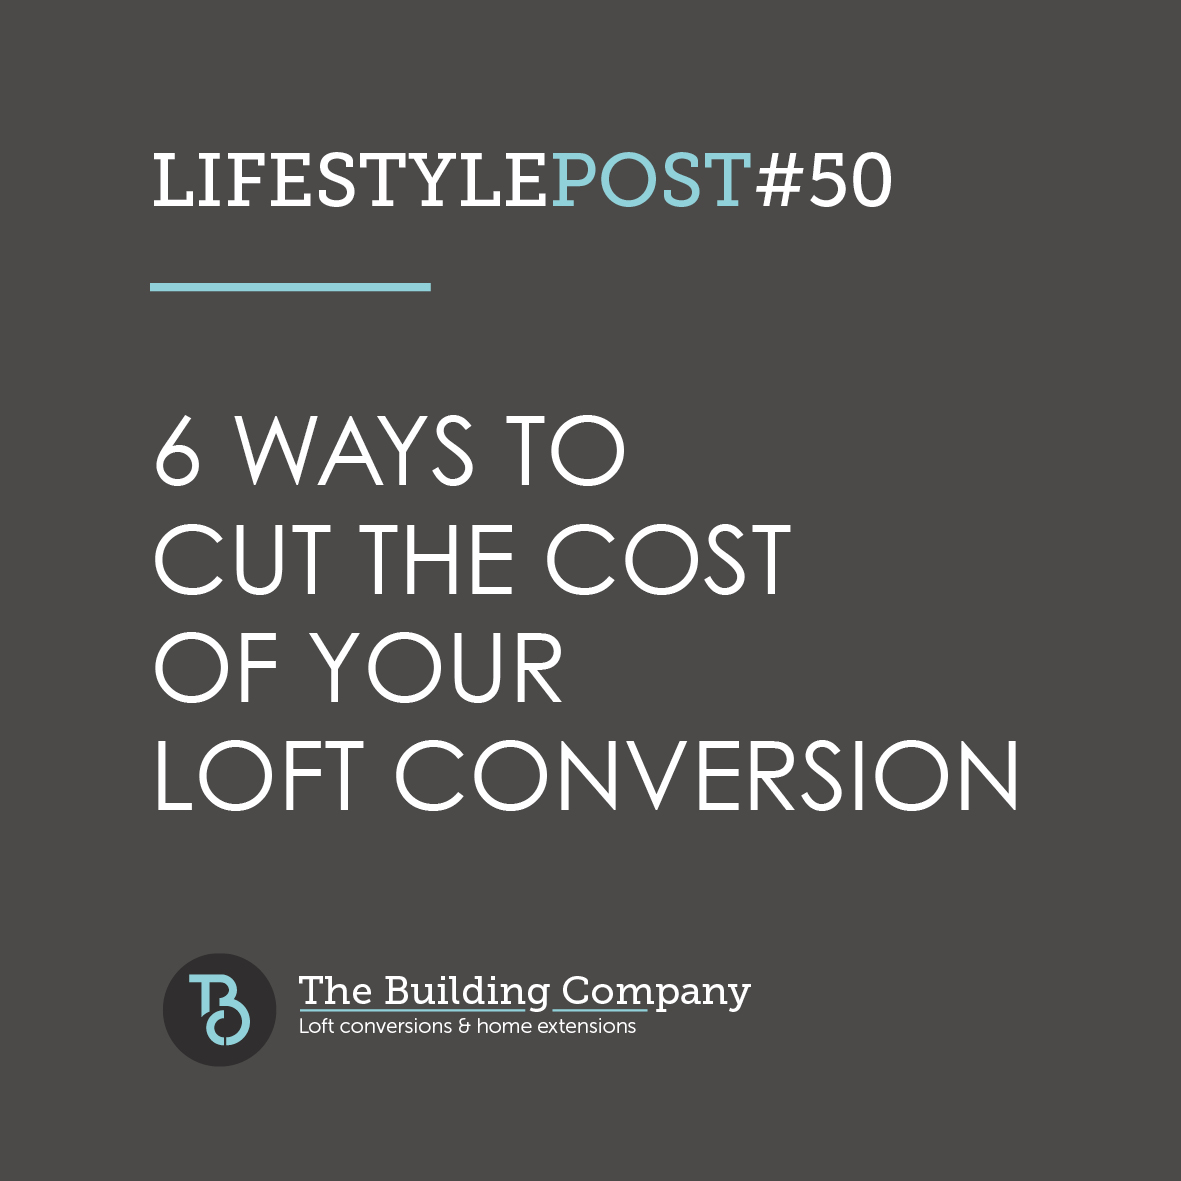 6 ways to cut the cost of your loft conversion in North London